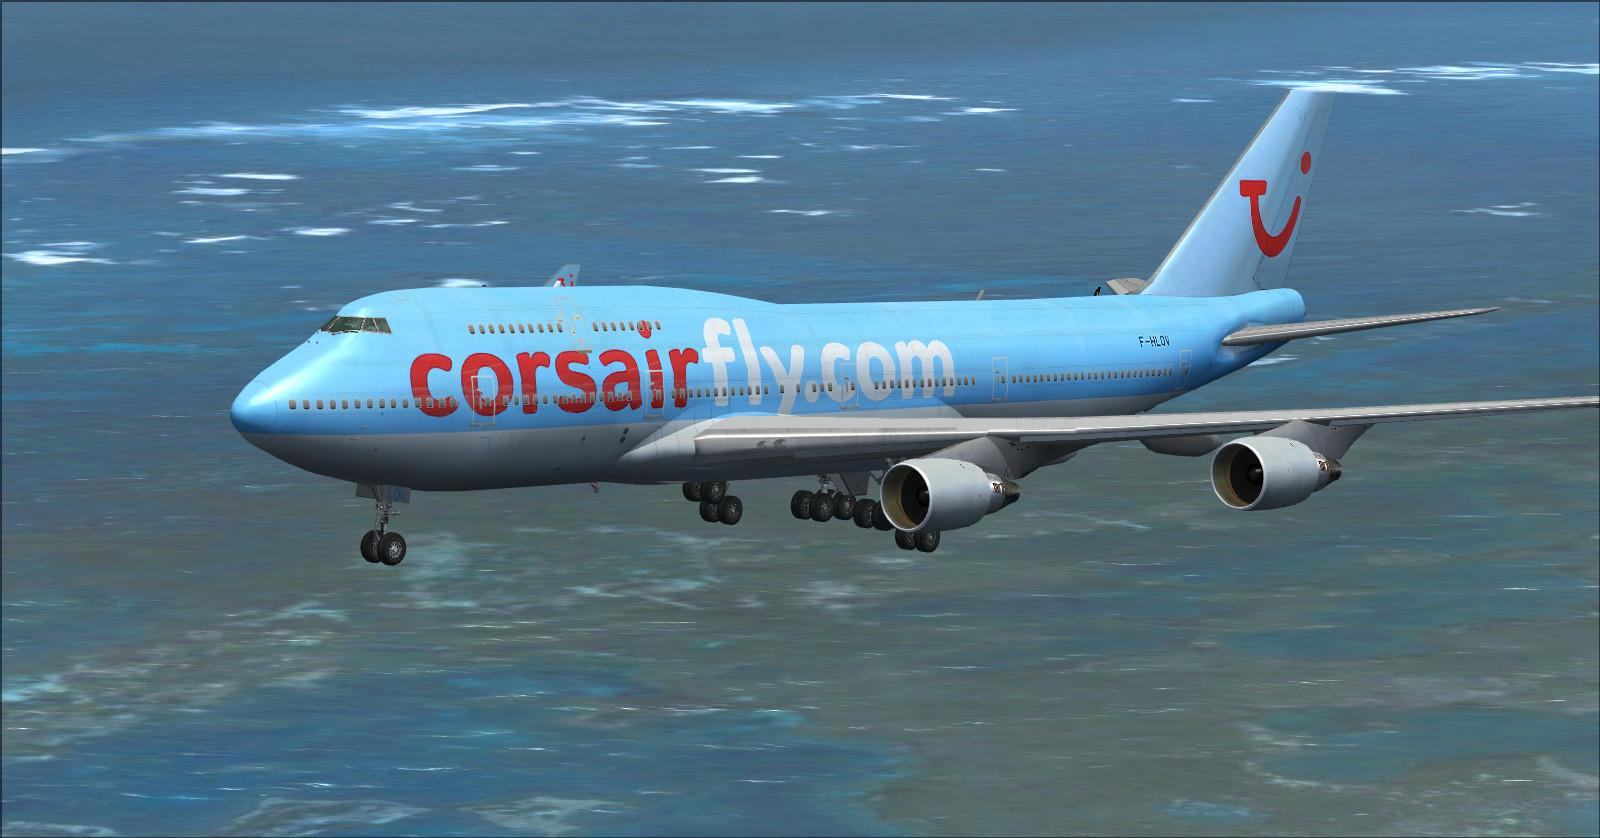 T l charger la flotte corsair international fsx p3d for Plan de cabine boeing 747 400 corsair